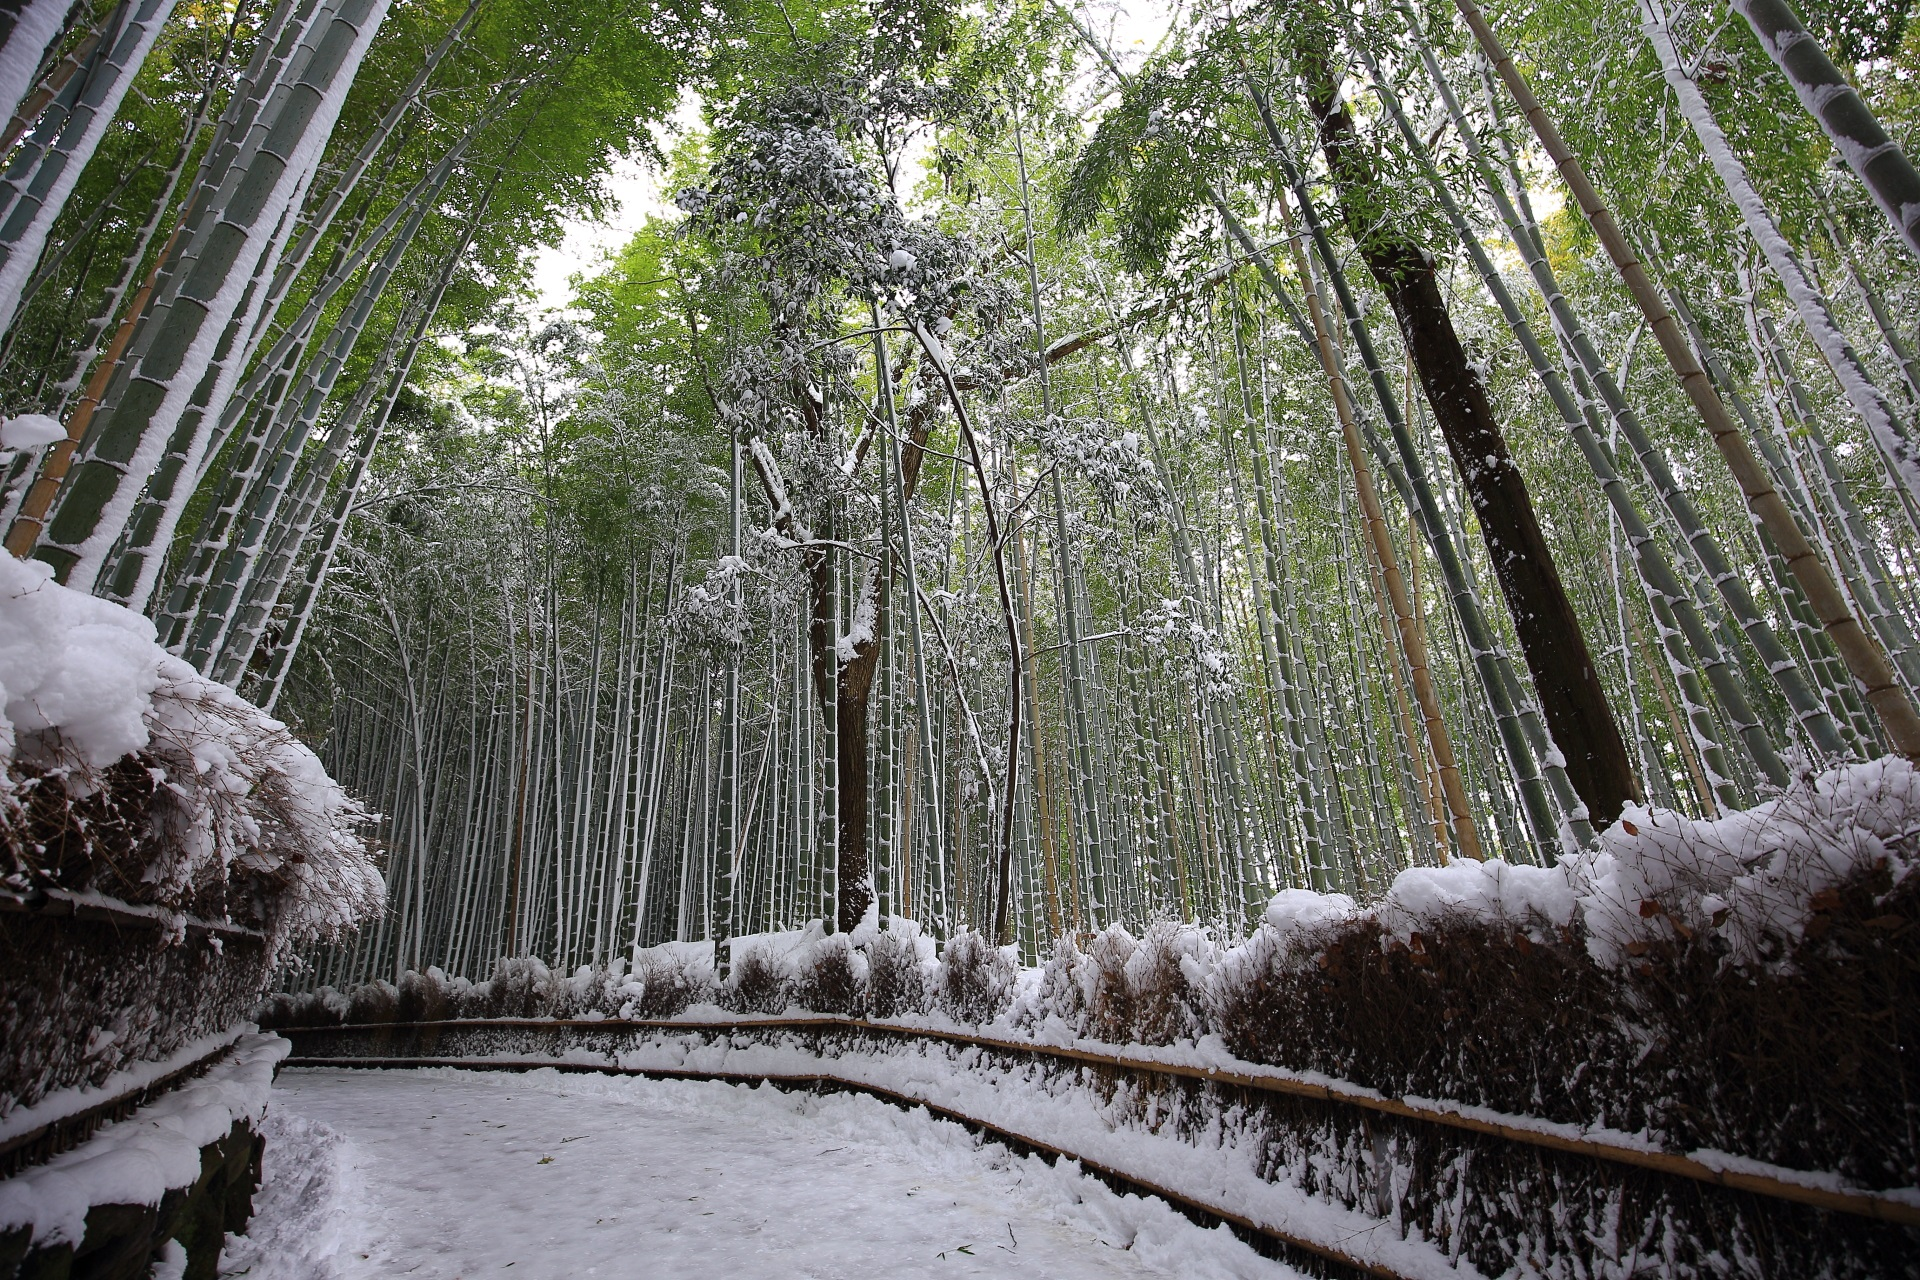 bamboo forest snowy landscape in Kyoto,Japan